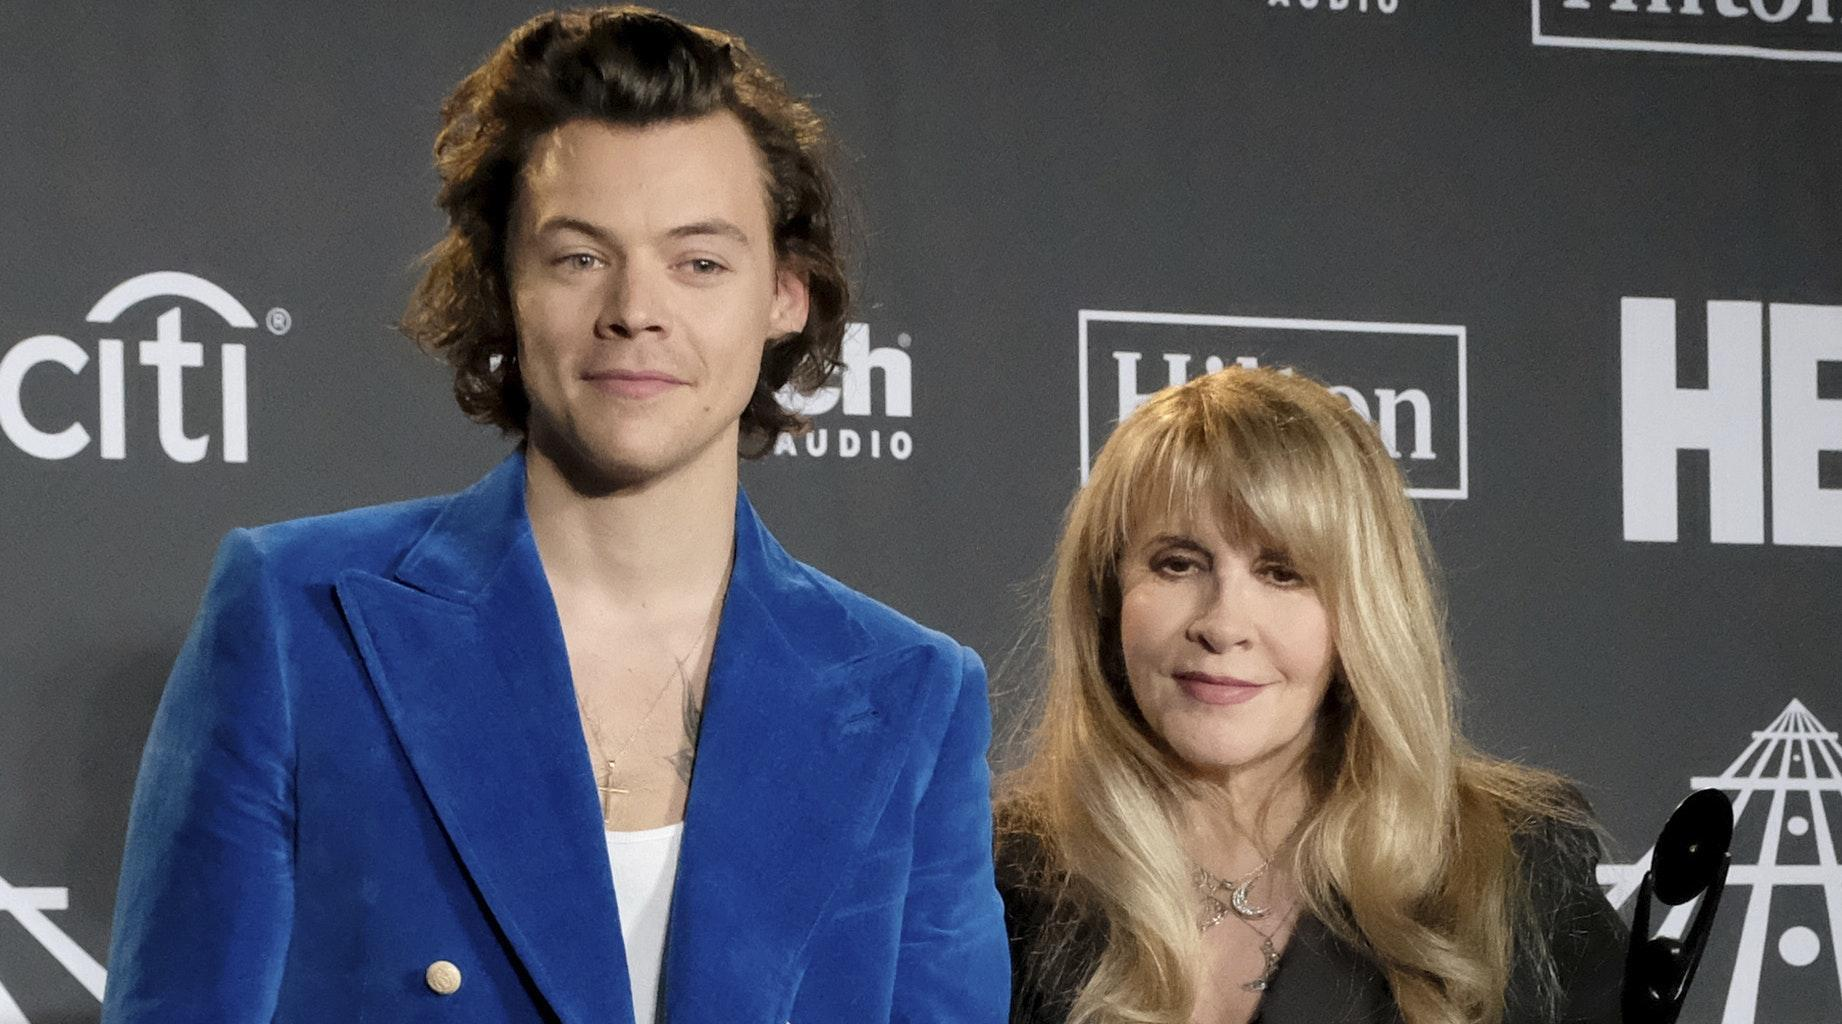 Stevie Nicks Mistakes Harry Styles For An NSYNC Member - Gets Made Fun Of On Social Media!